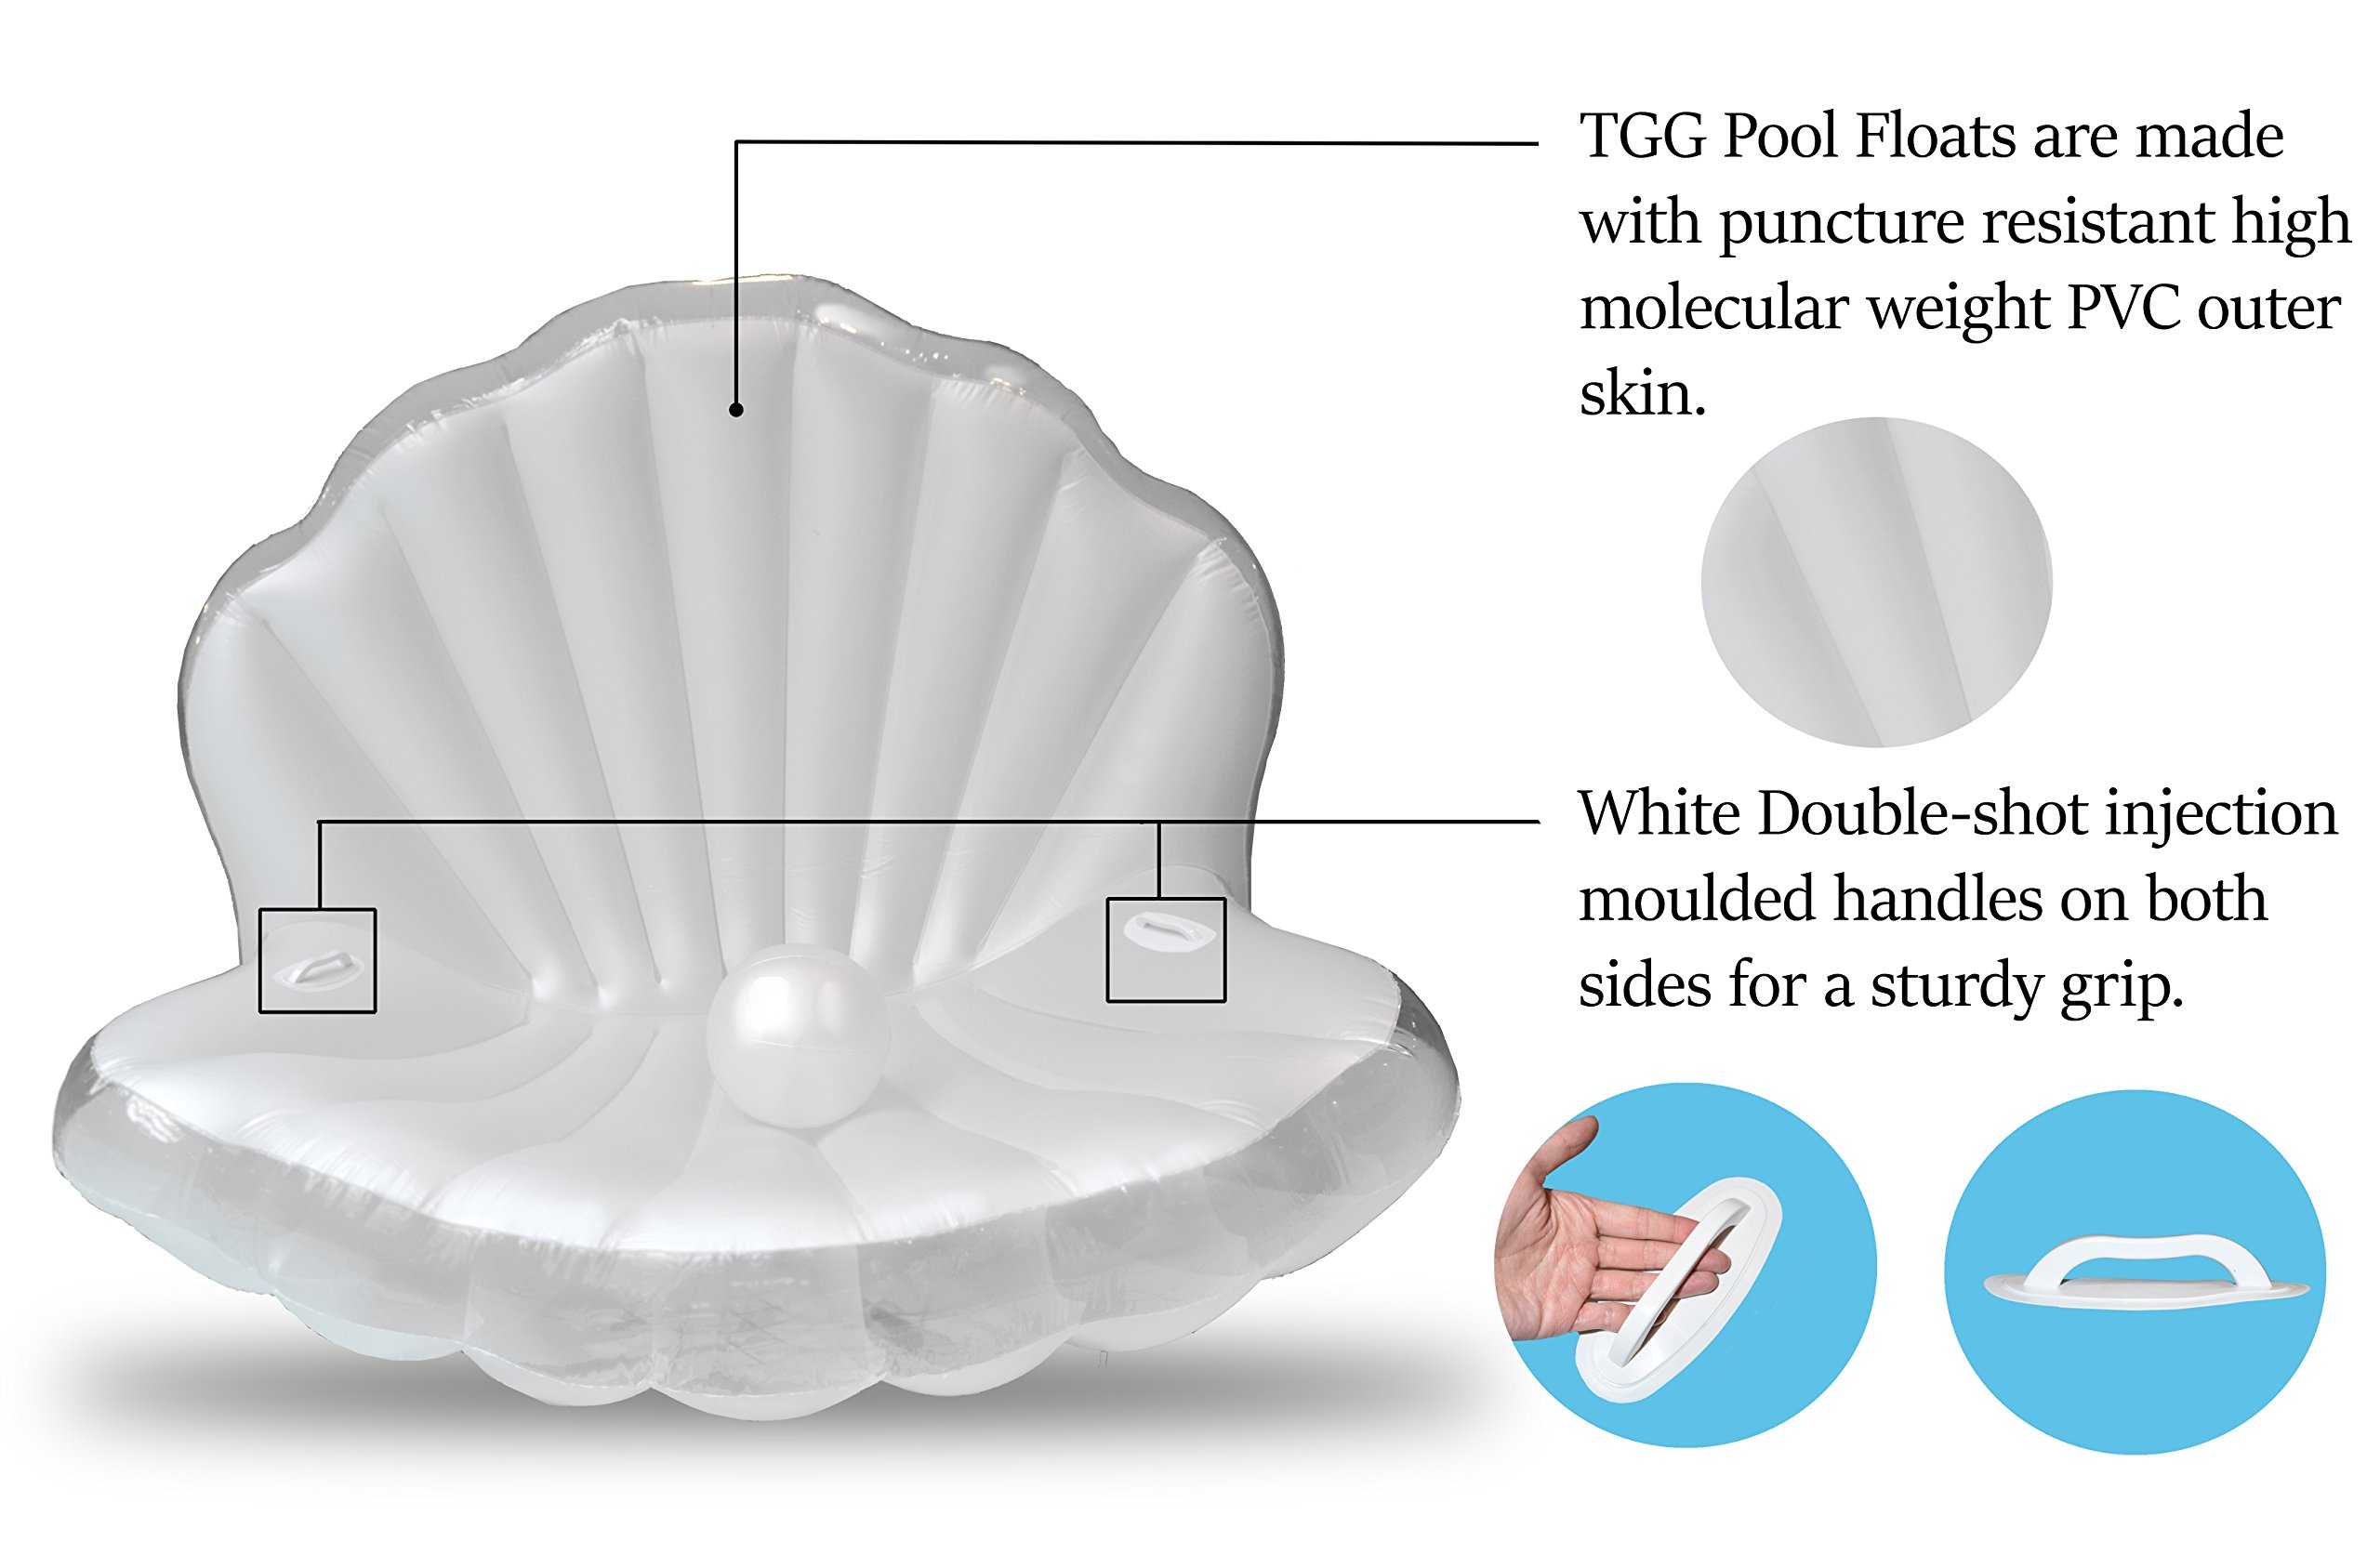 TGG Colossal Sea Shell Pool Float/ Swimming Pool Inflatable Raft 62 x 54 x 54 inches (Pearl White w/ White Handles) by Tgg (Image #4)